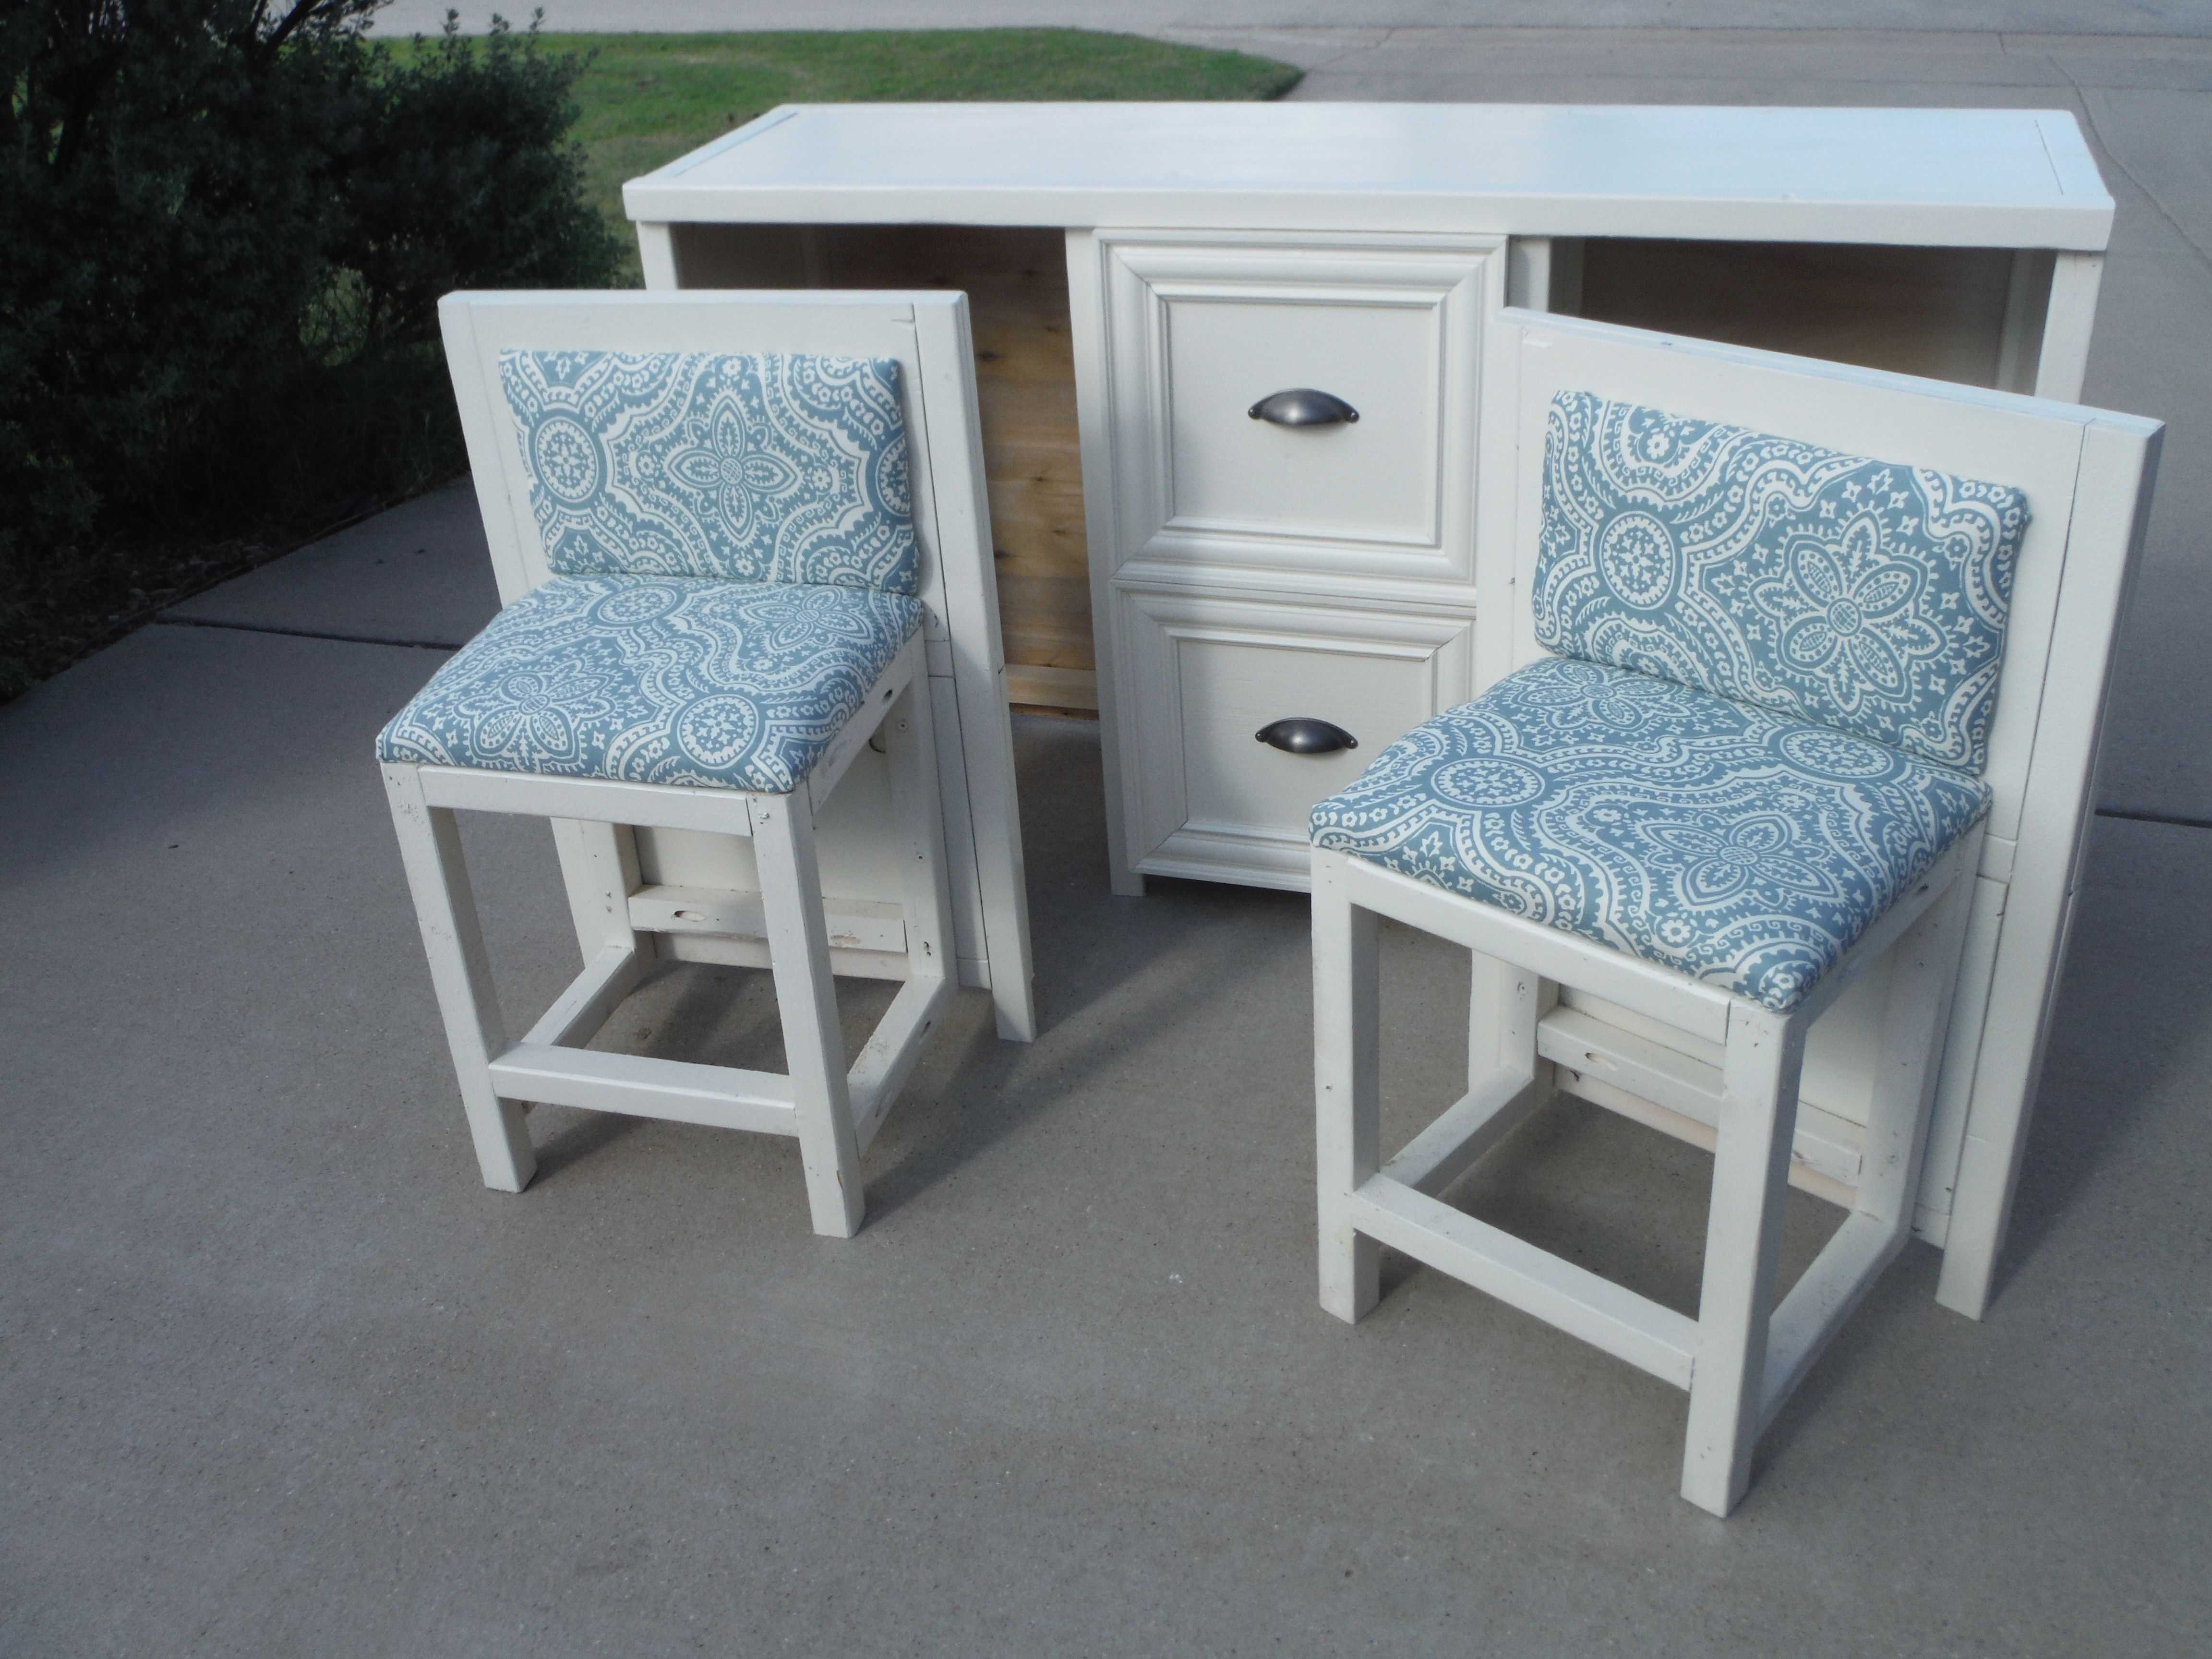 hidden writers desk storage white new for spaces drawers canada simple writing antique interior with desks target and small elegant walmart marvellous furniture hutch chair